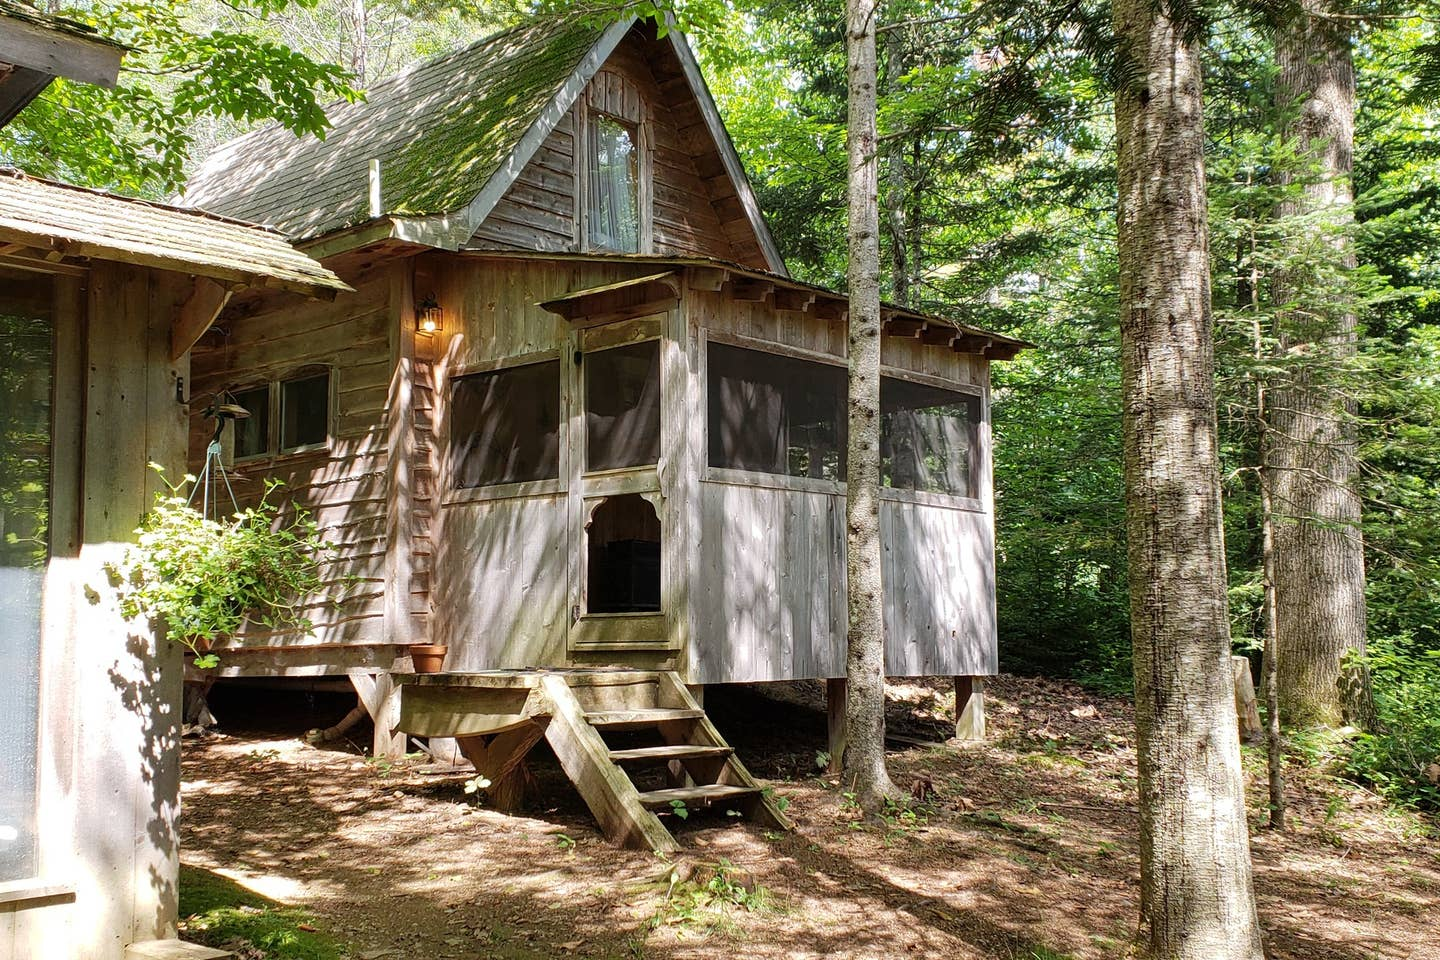 Cheap Airbnb in Maine